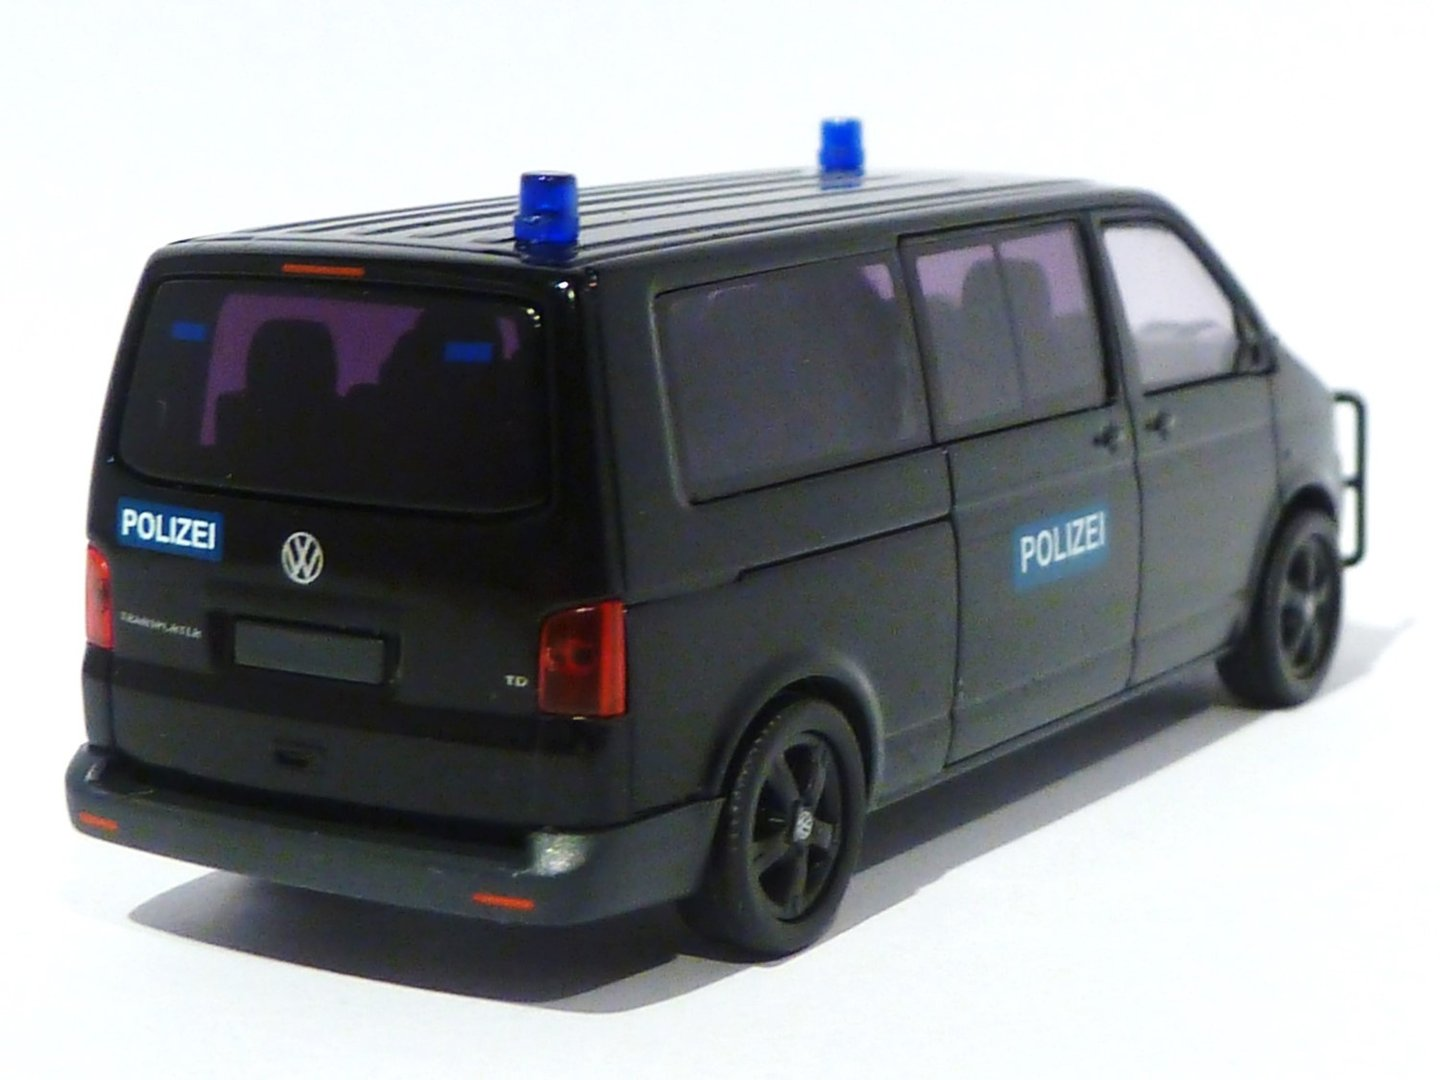 vw t5 bus mit rammschutz polizei spezialeinsatzkommando. Black Bedroom Furniture Sets. Home Design Ideas